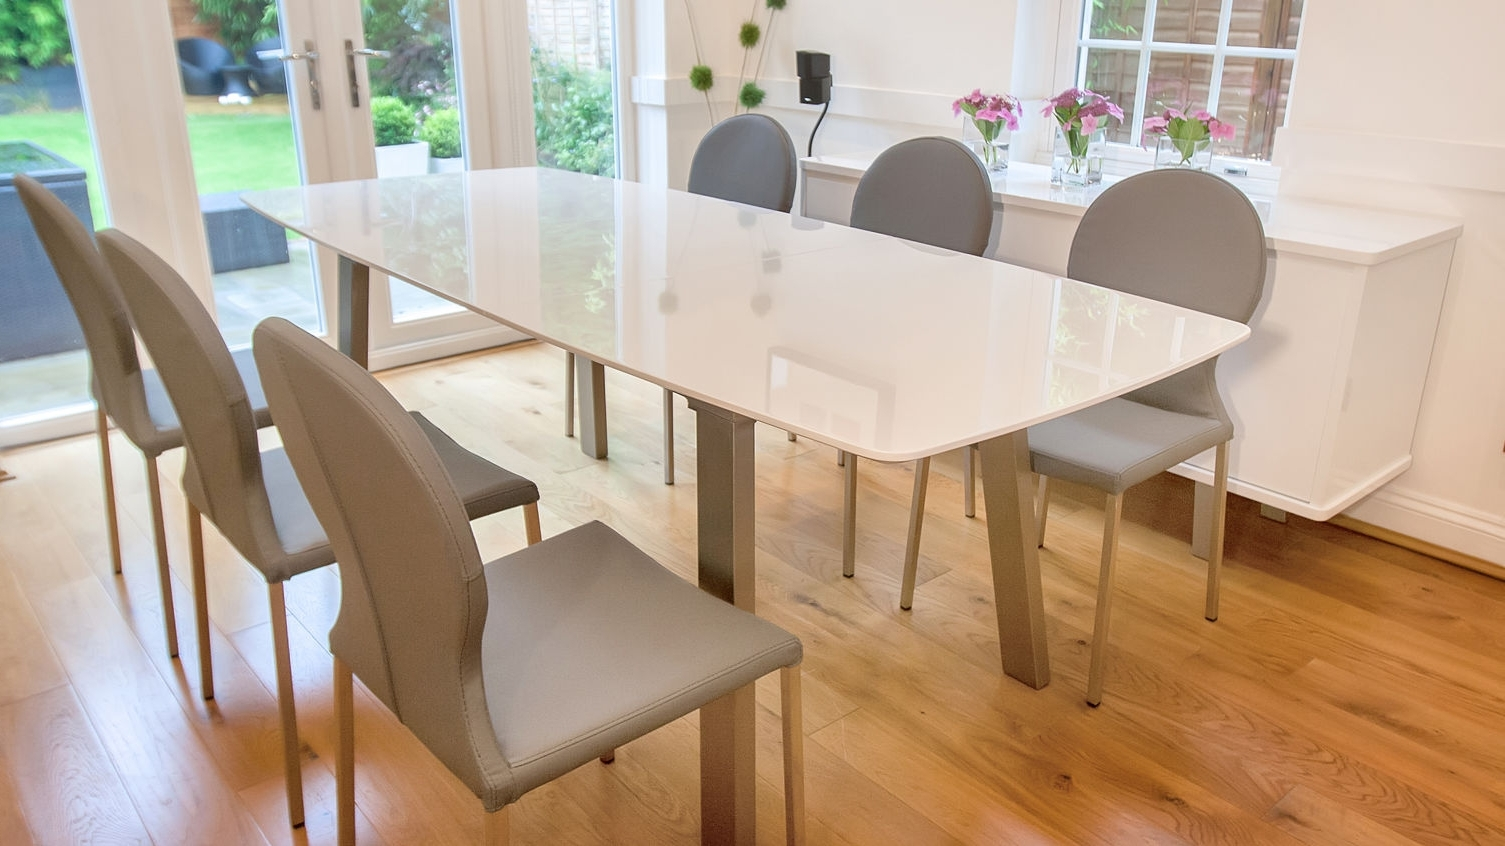 Extending Dining Room Tables And Chairs Dining Room Chair Slipcovers Intended For Most Up To Date Extending Dining Table And Chairs (View 9 of 25)